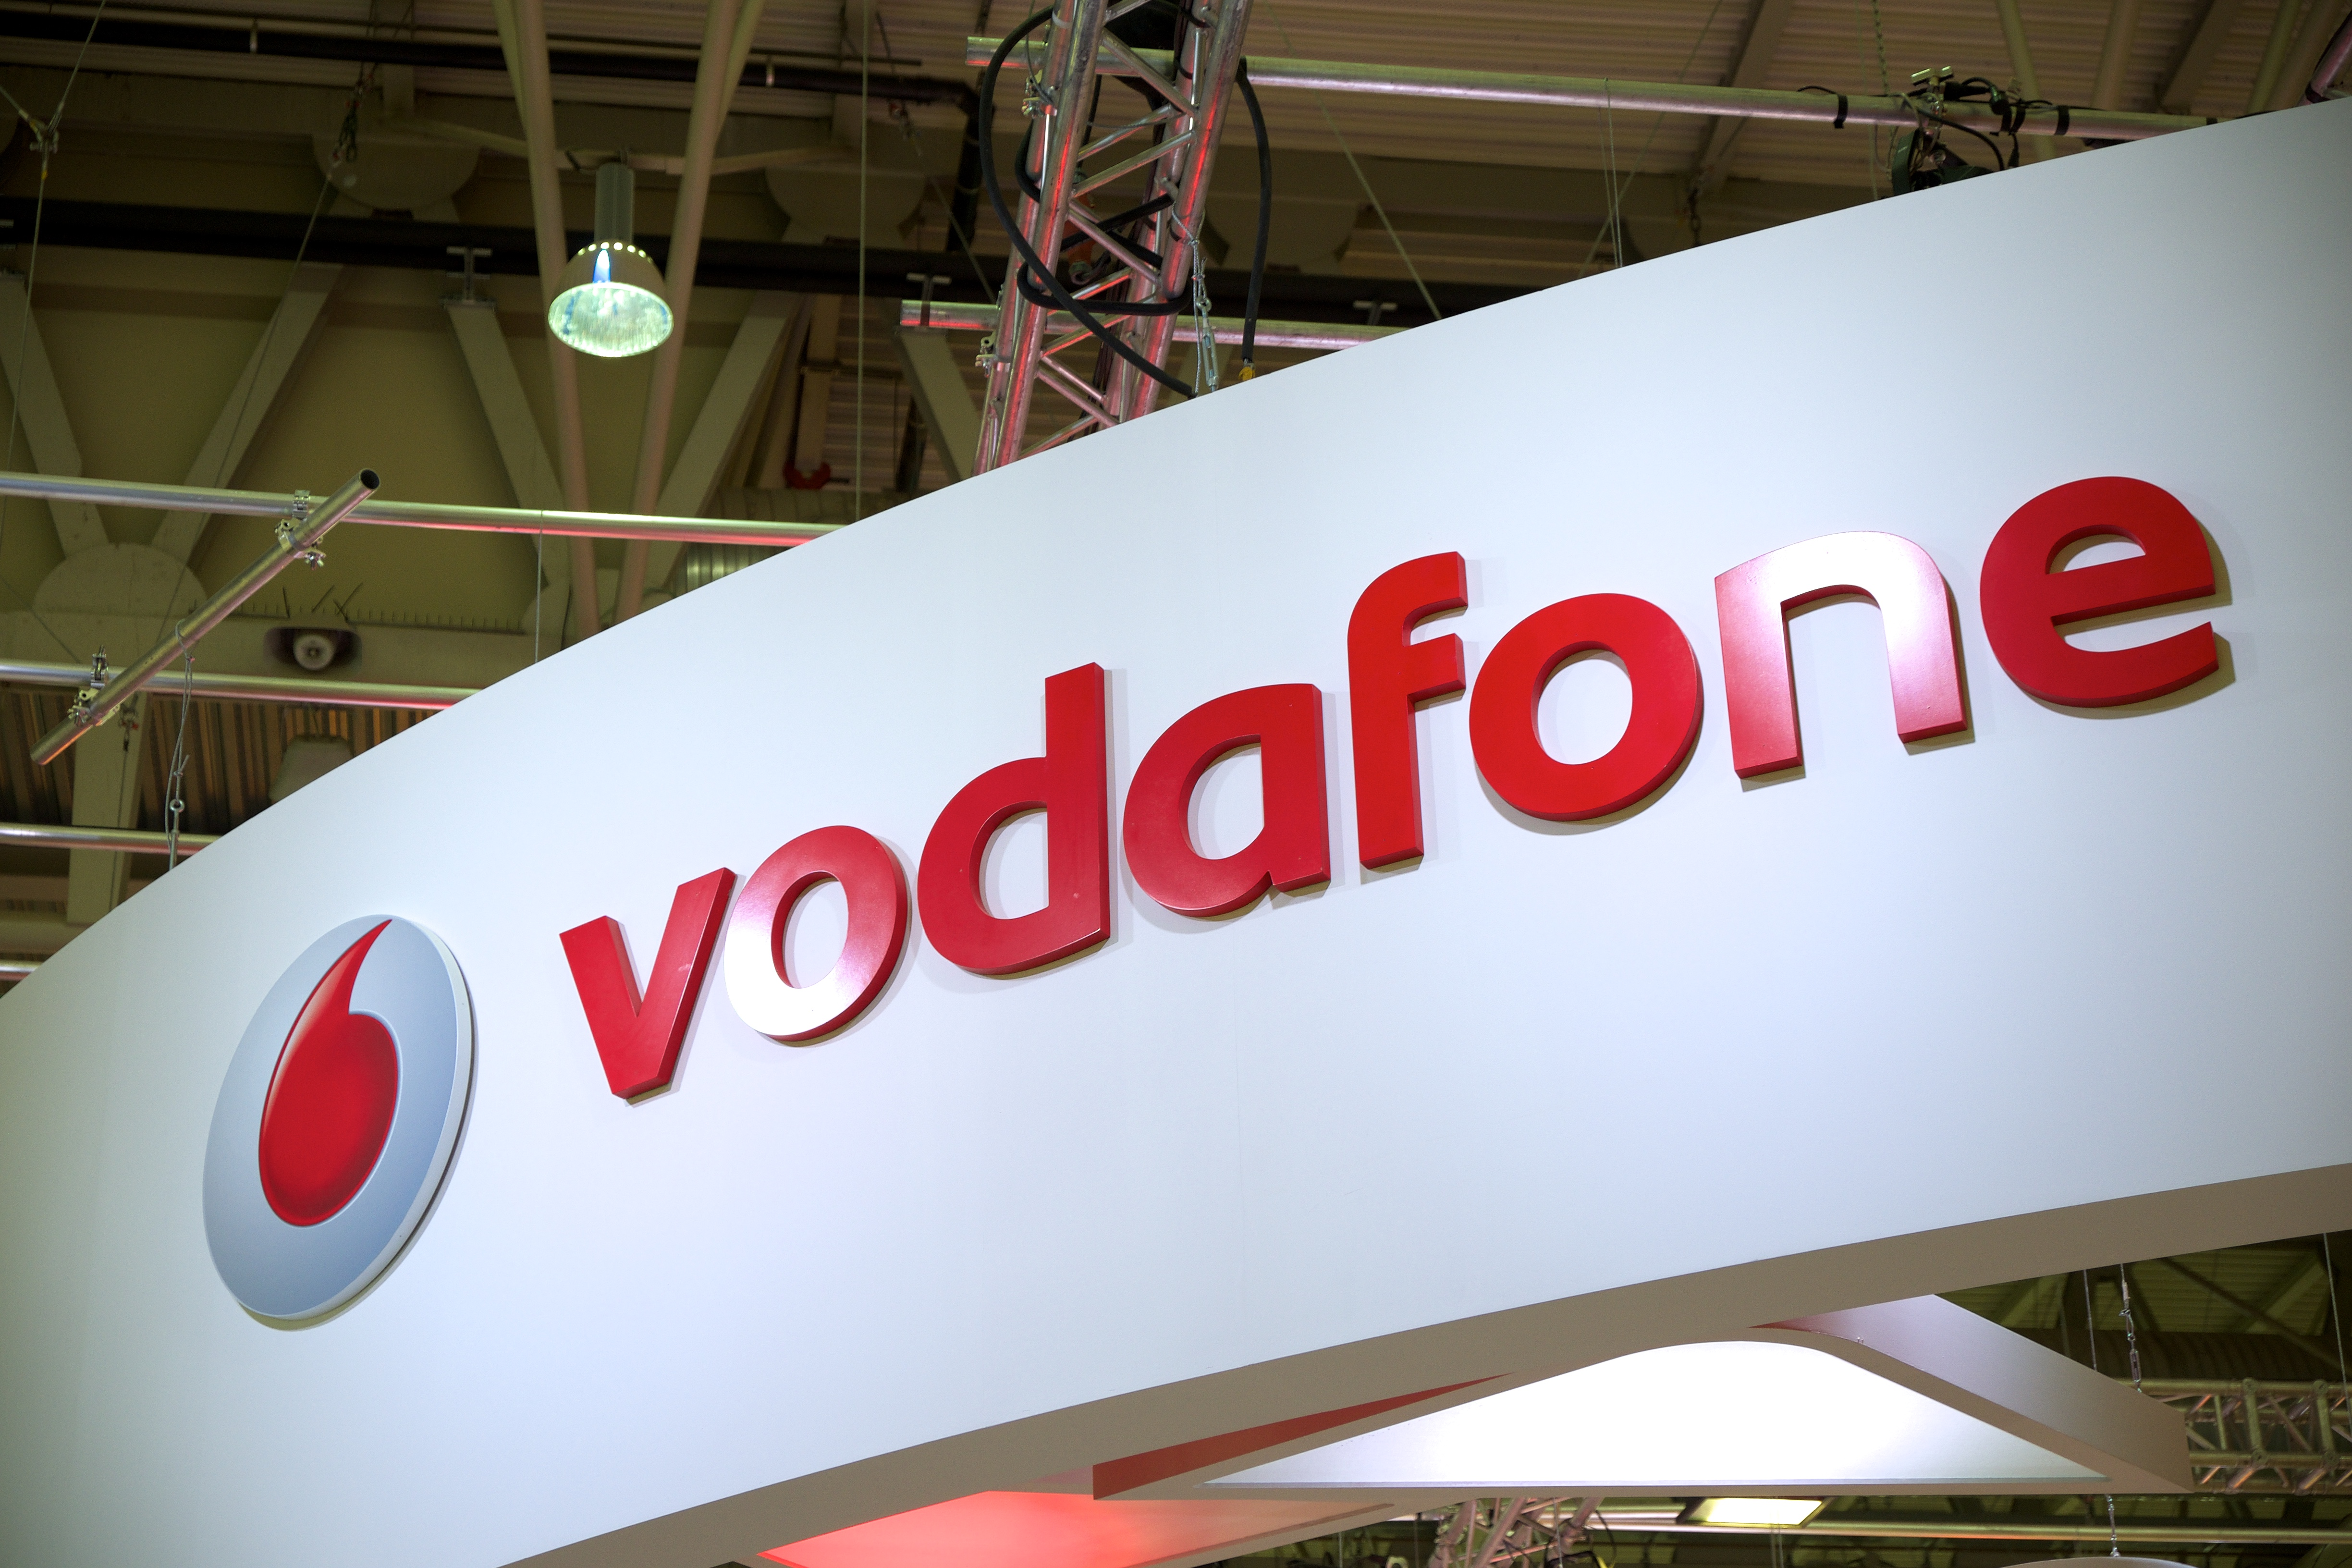 Latest Vodafone Advert Features Elderly Woman on a Dating App